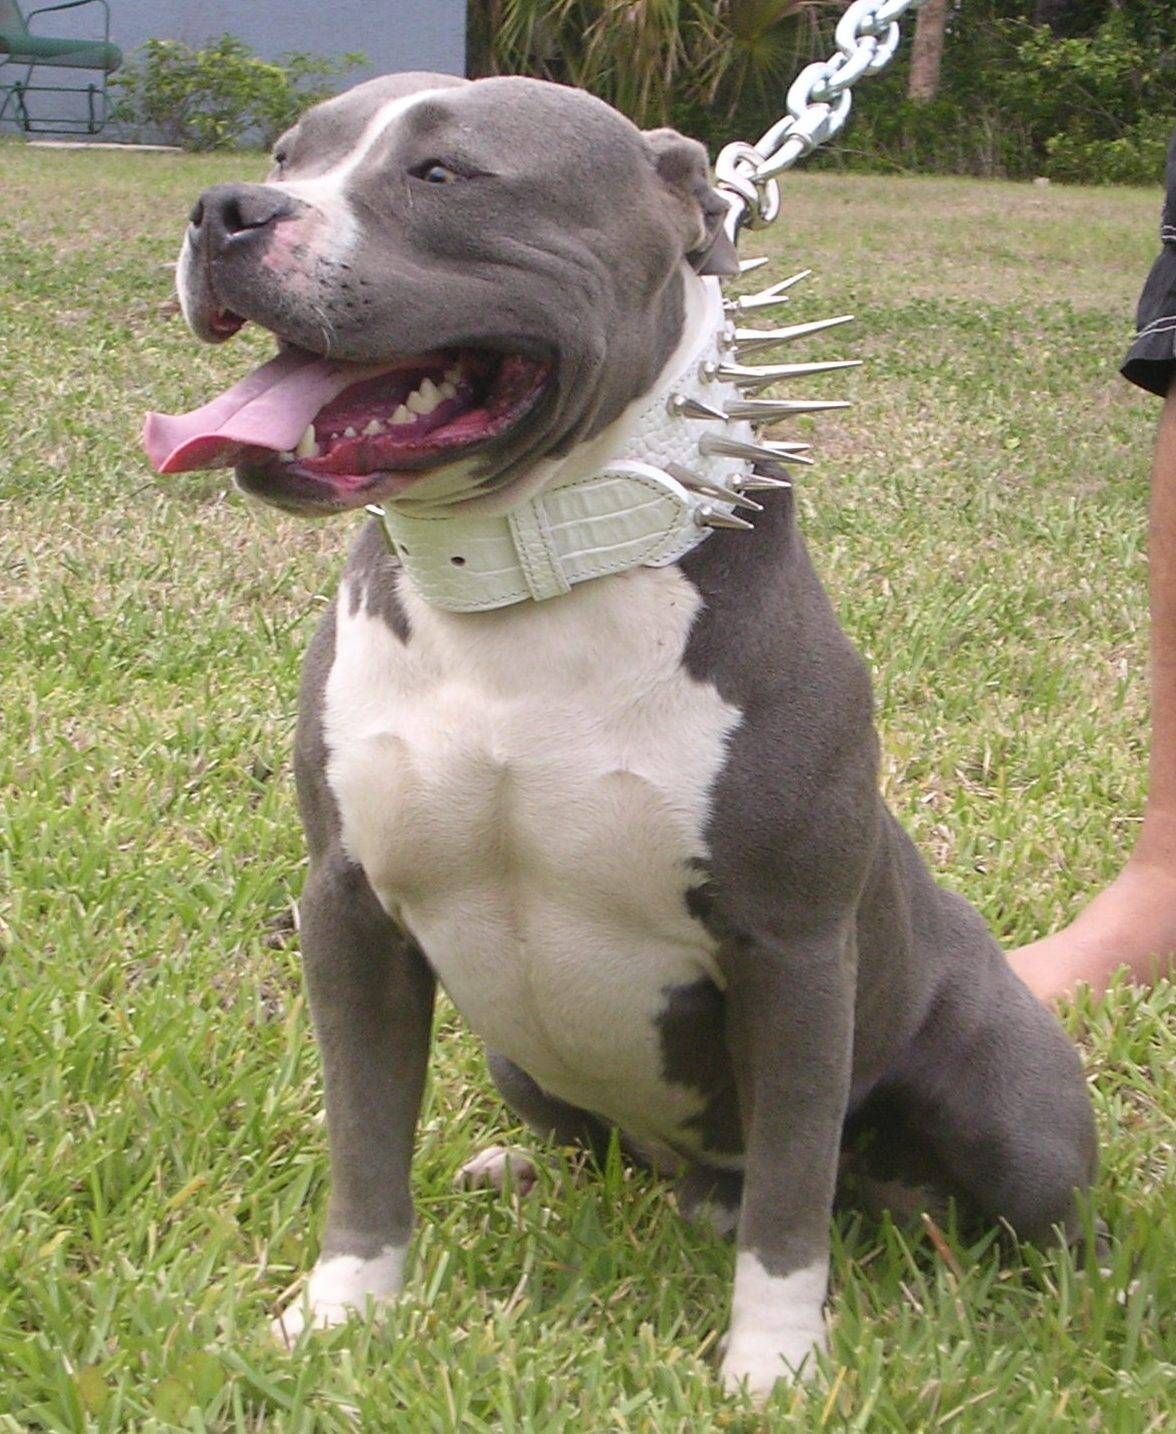 Pitbull Spiked Collars And Harnesses Chain And Spiked Collar